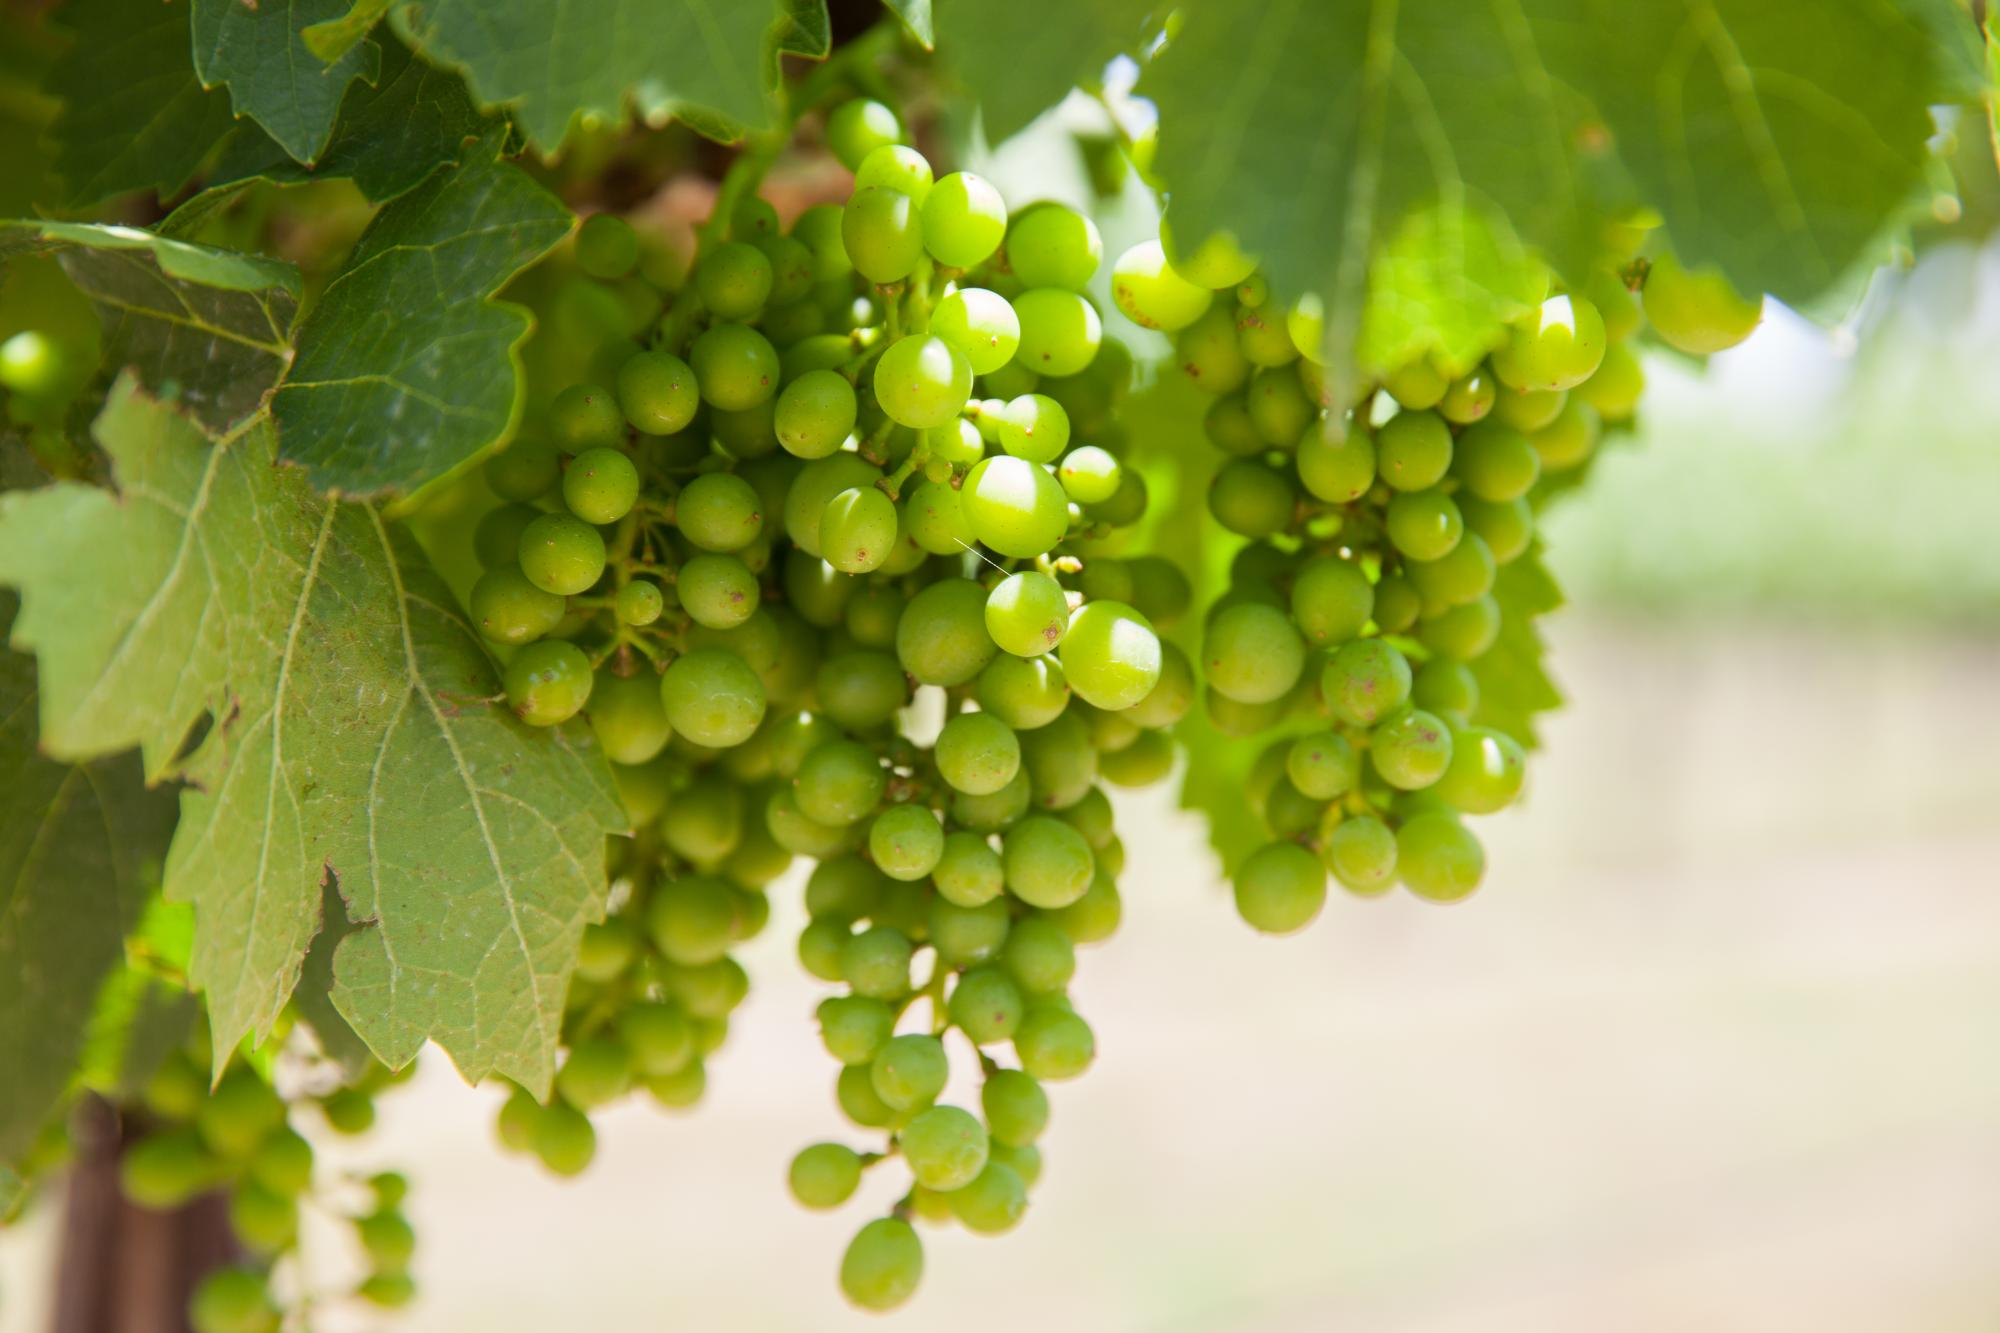 Spring_Grapes_1_-_Peary_Photog80737.jpg